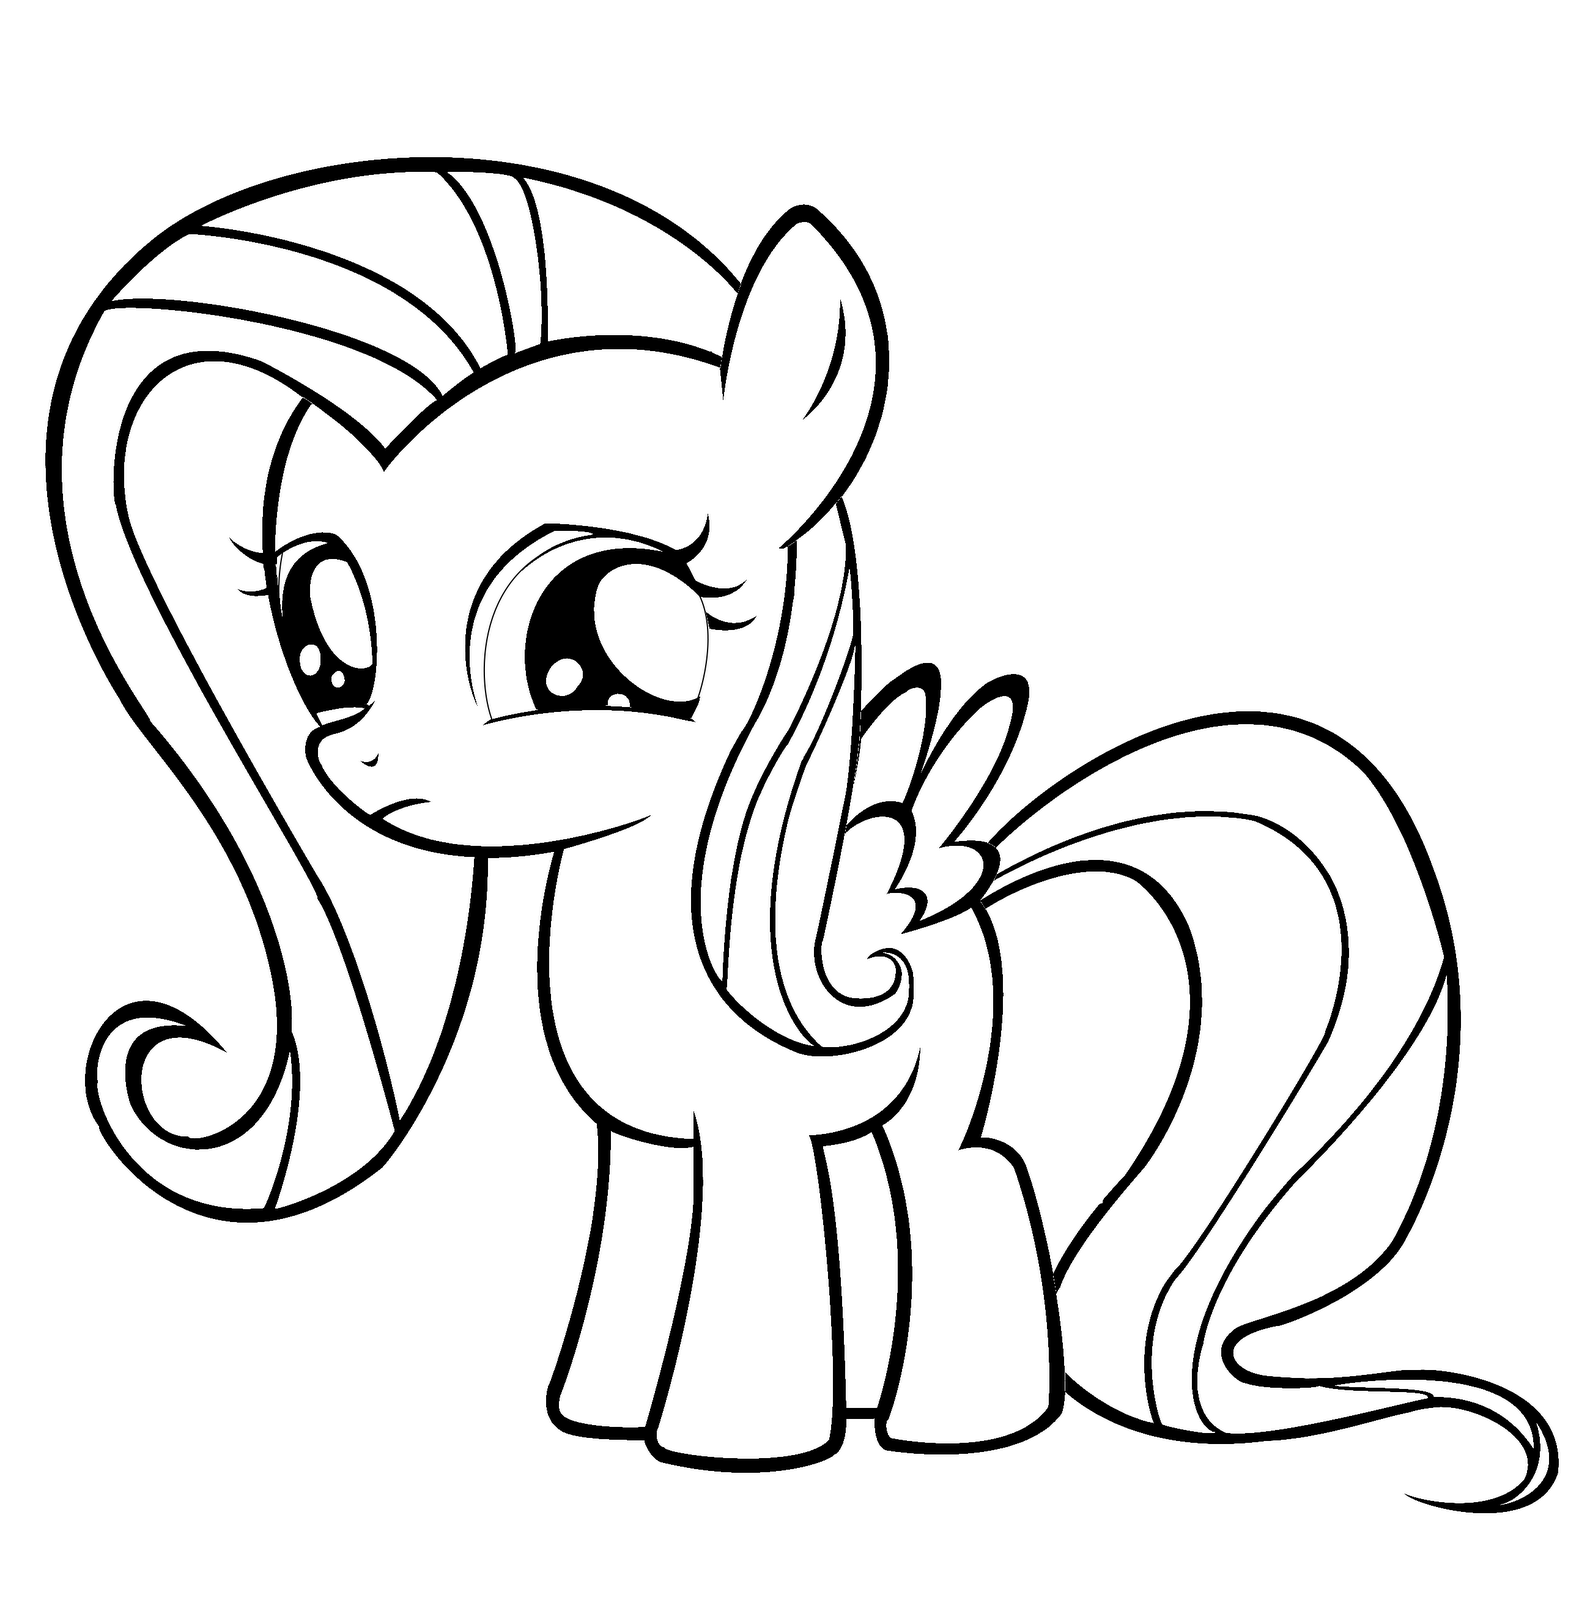 Fluttershy Coloring Pages Best Coloring Pages For Kids Best Colouring Pages